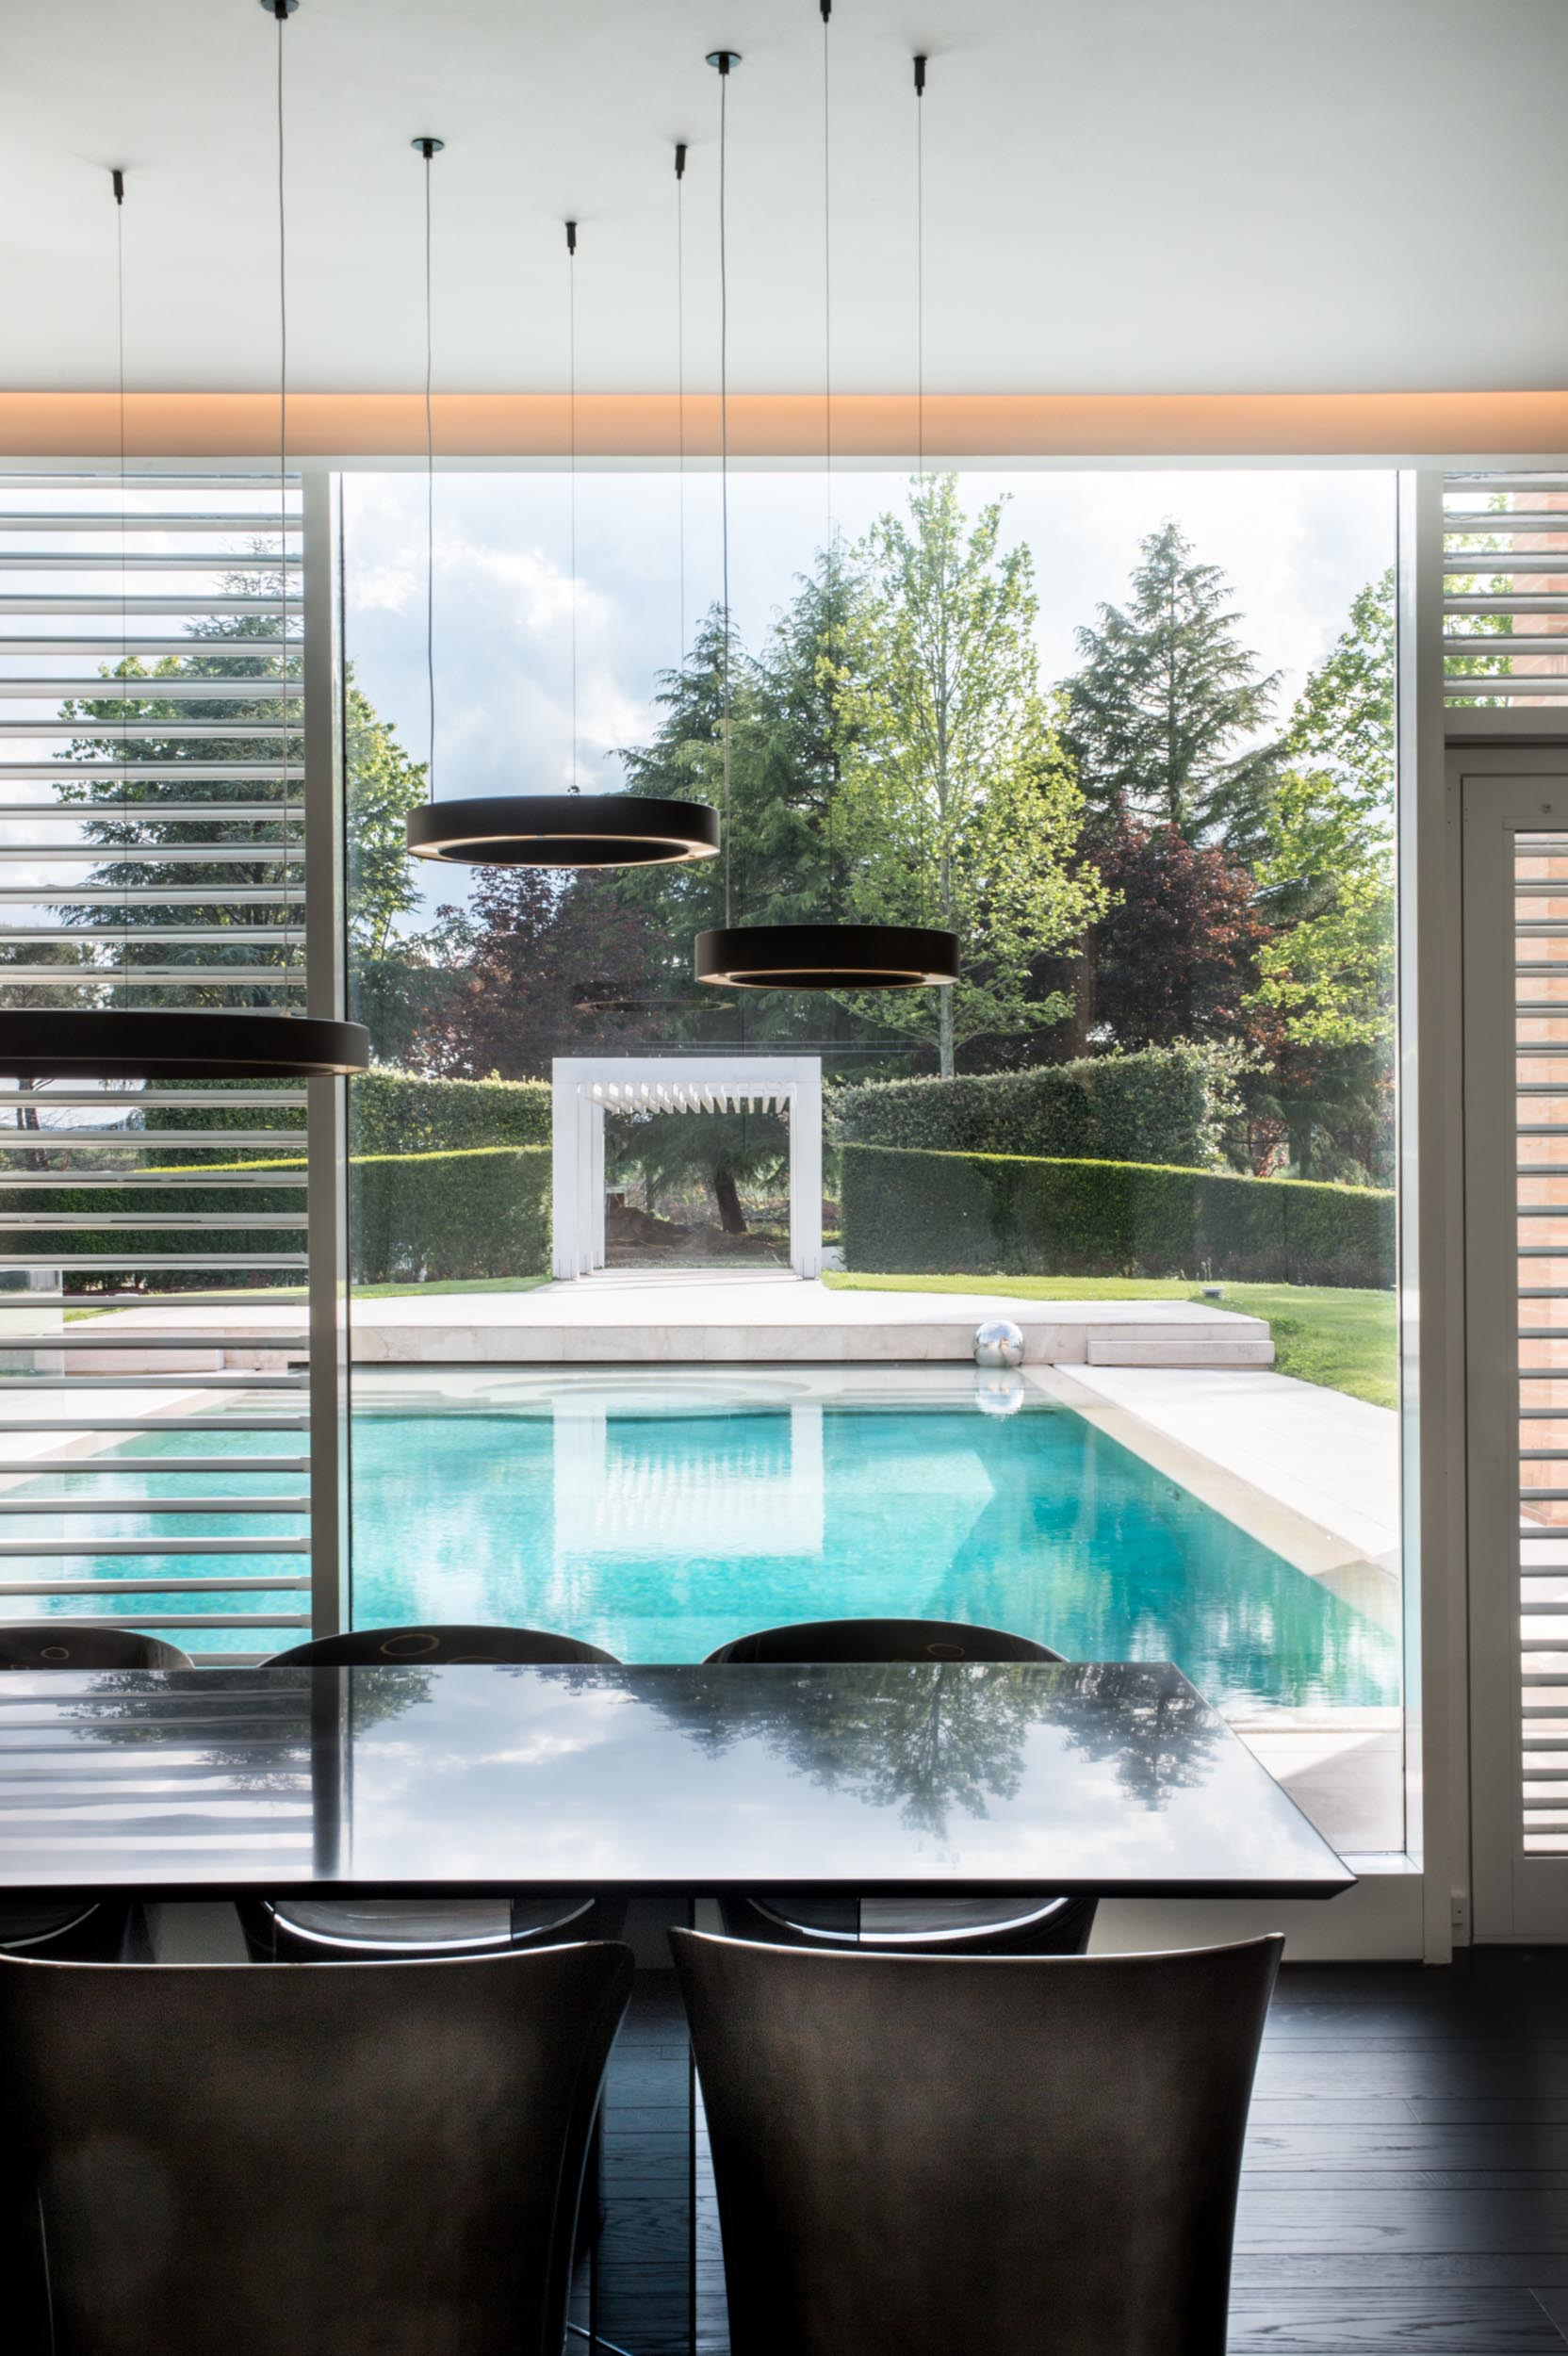 A modern dining room with a view of the pool.